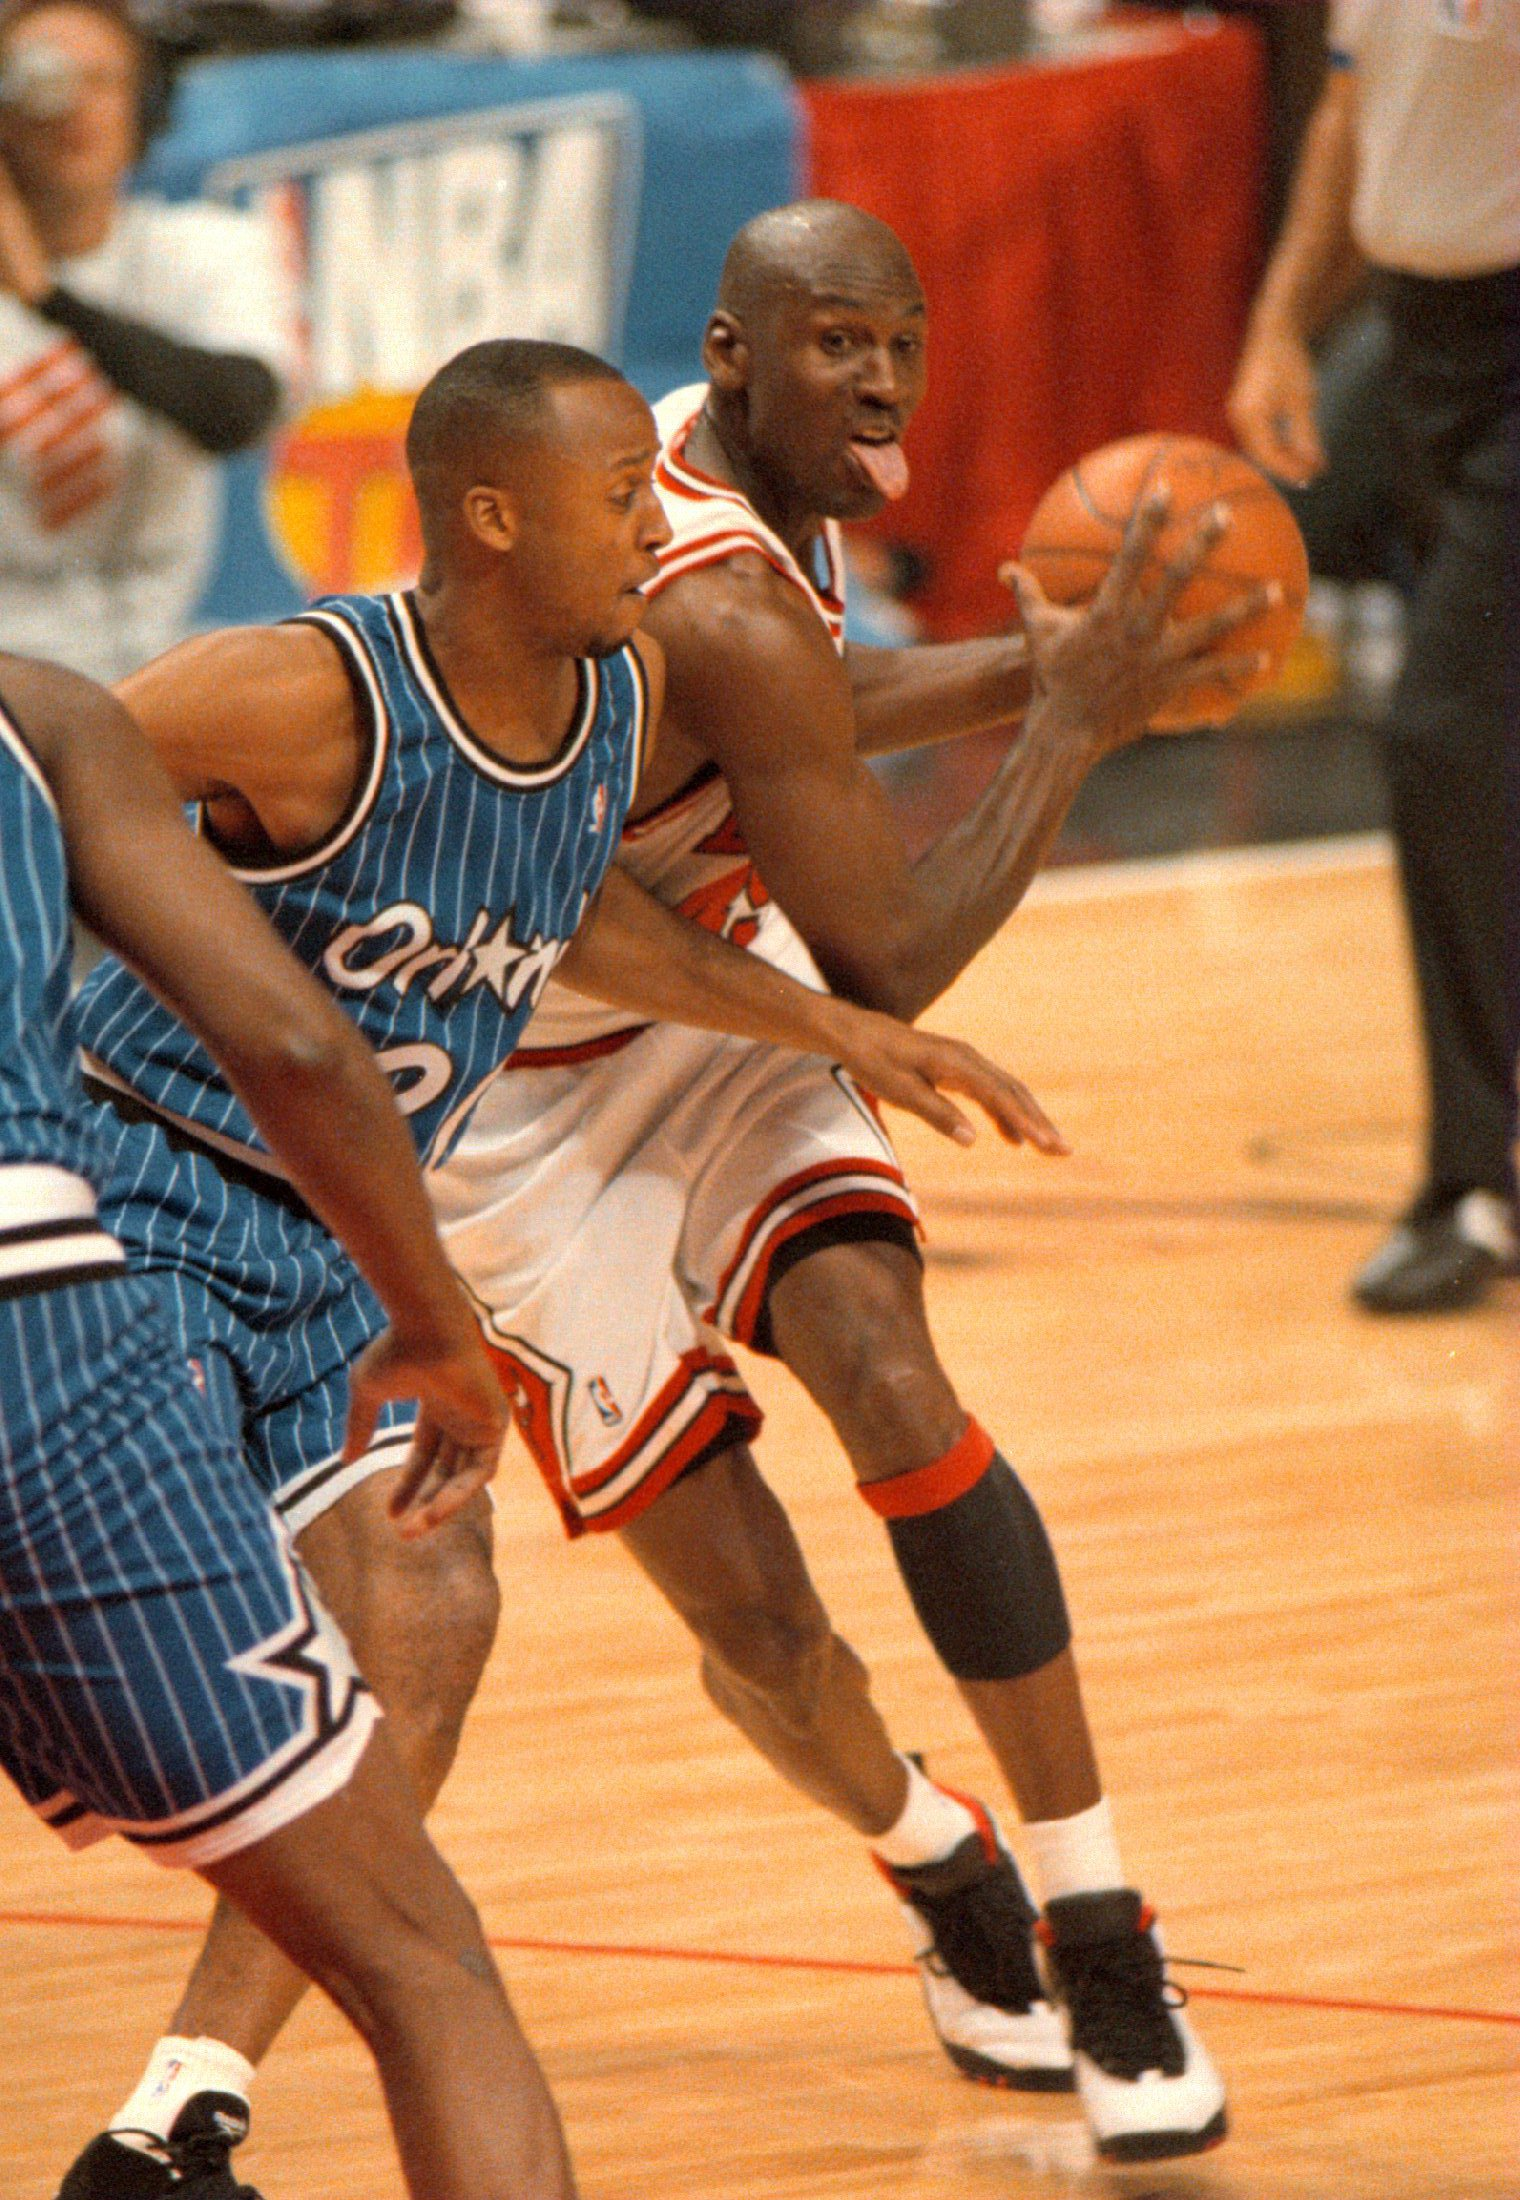 24 Mar 1995: MICHAEL JORDAN OF THE CHICAGO BULLS TAKES THE BALL AROUND BRIAN SHAW OF THE ORLANDO MAGIC DURING FIRST QUARTER ACTION OF MICHAEL''S FIRST HOME GAME AS A BULL AFTER RETURNING FROM RETIREMENT AT THE UNITED CENTER IN CHICAGO, ILLINOIS.